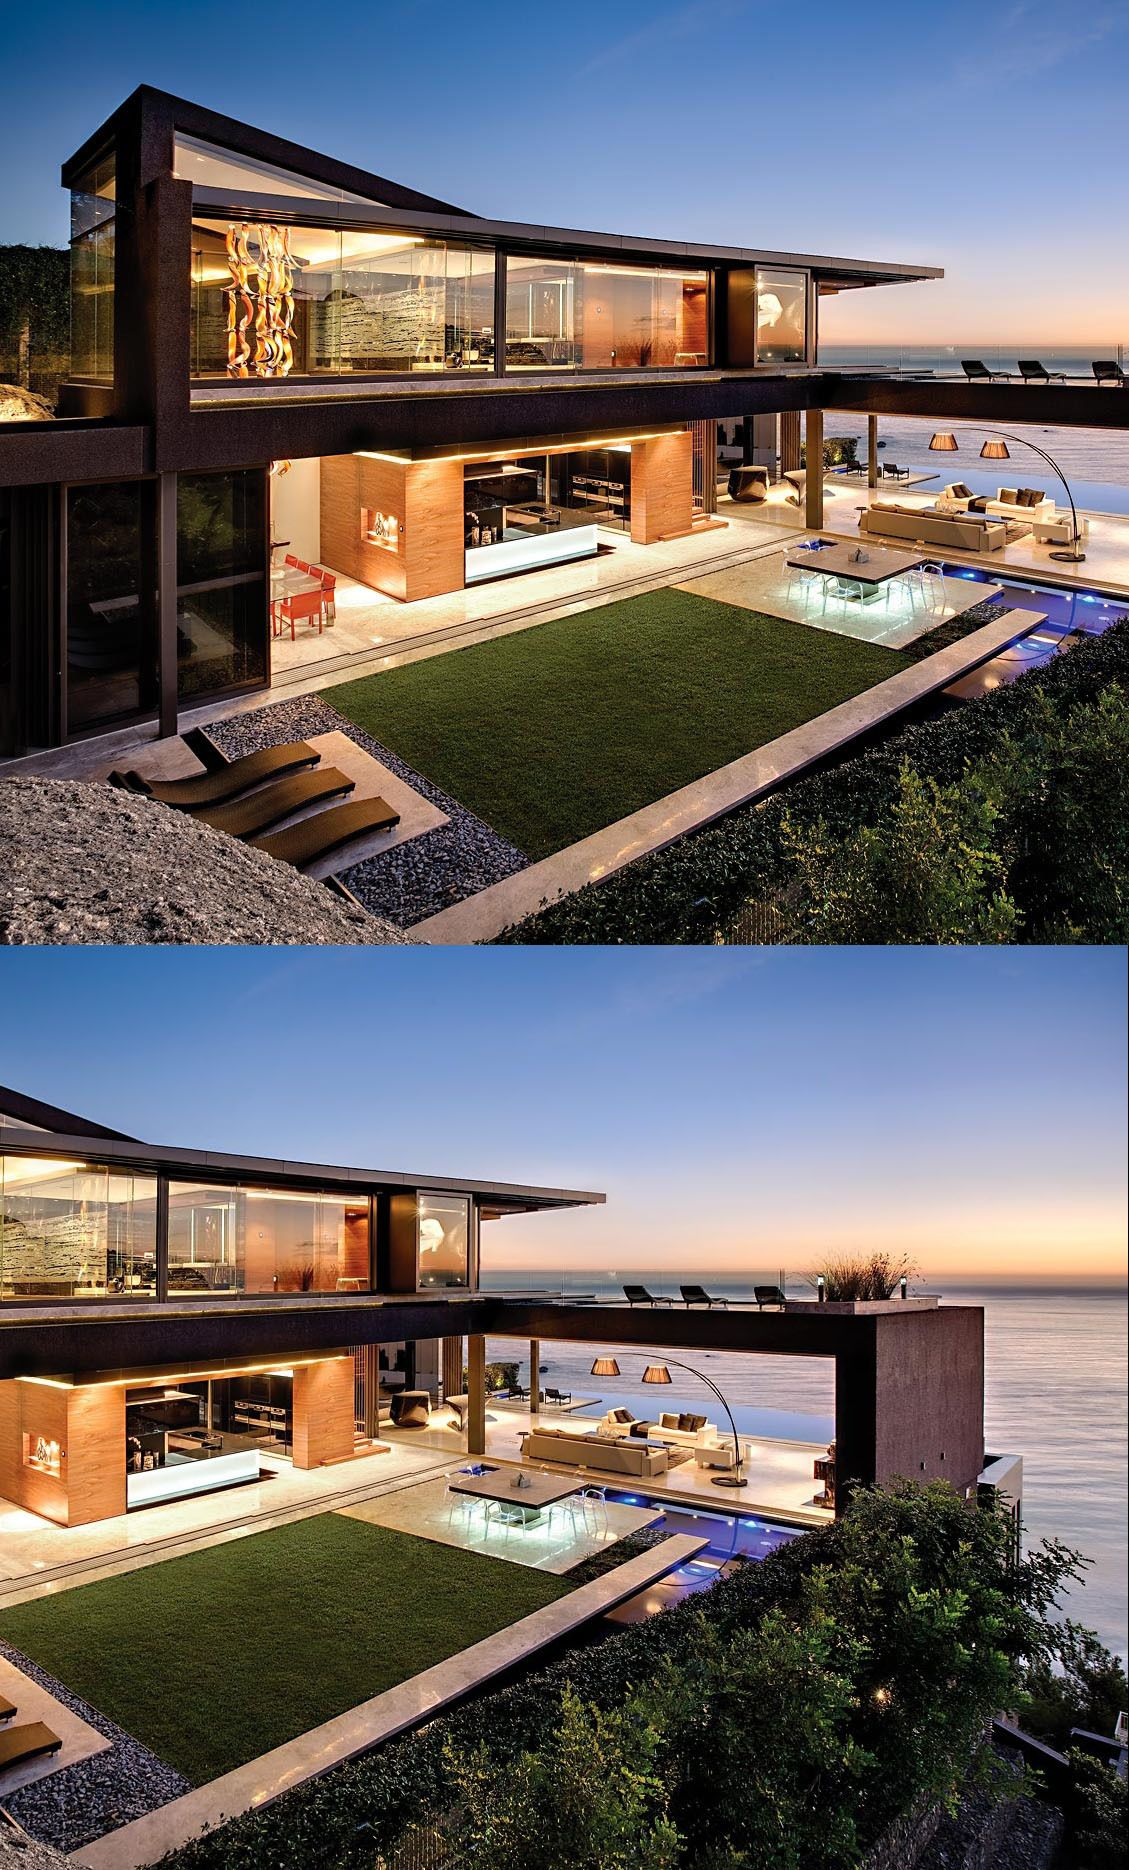 Home designing  via nettleton house by saota also south african design firm nico van der meulen completed  project rh pinterest